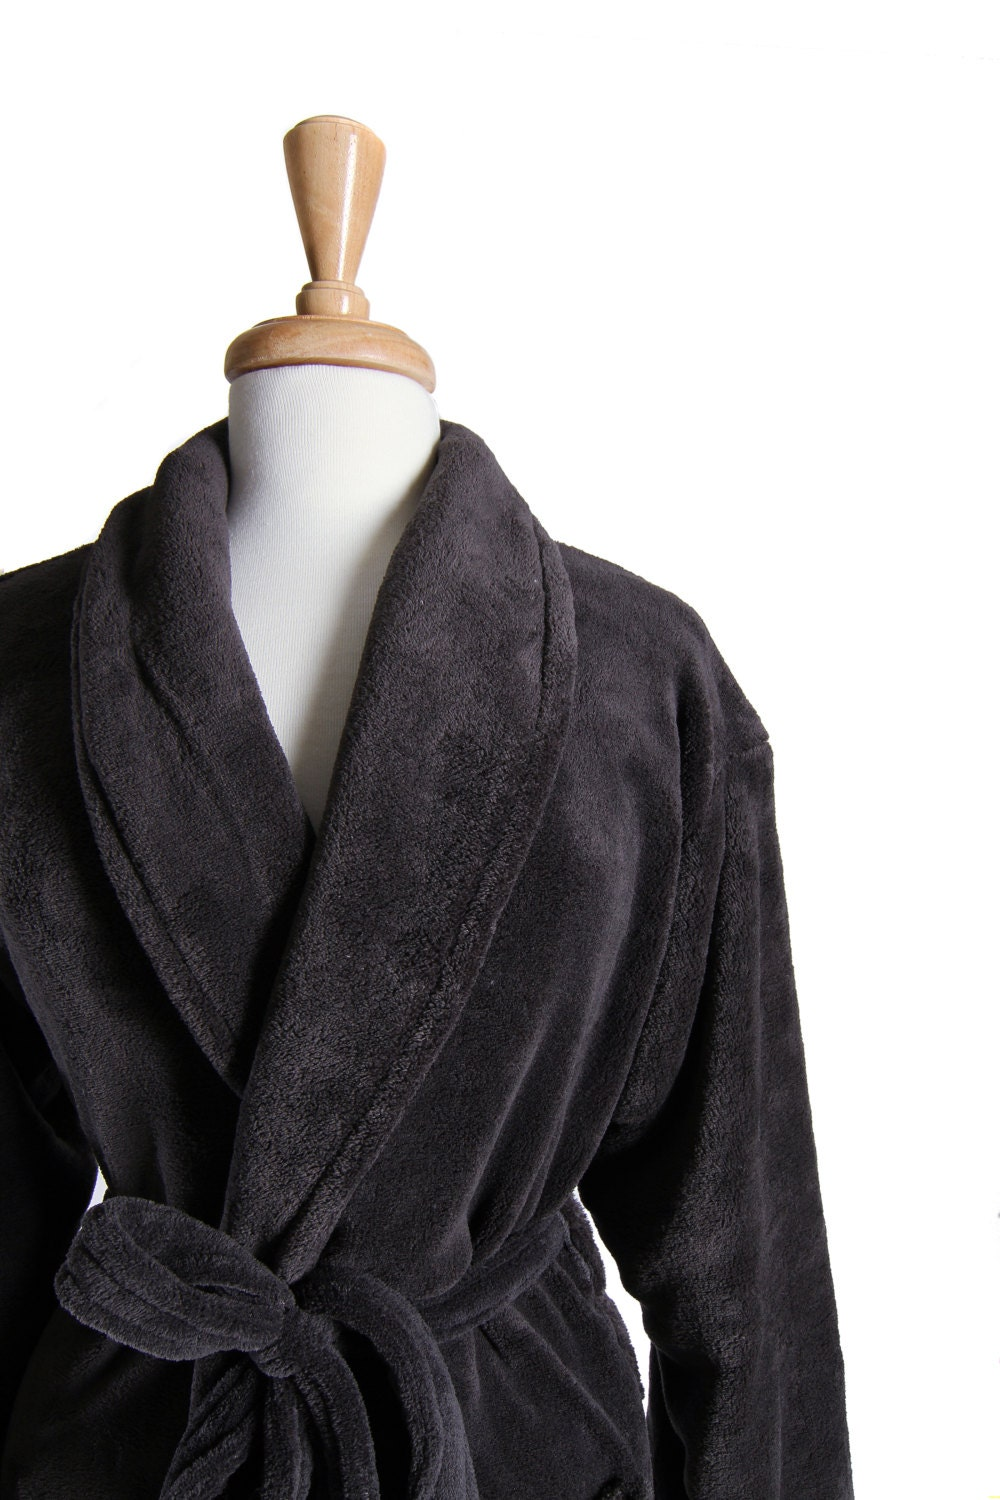 charcoal gray his and hers bath robe mr  and mrs  bathrobes